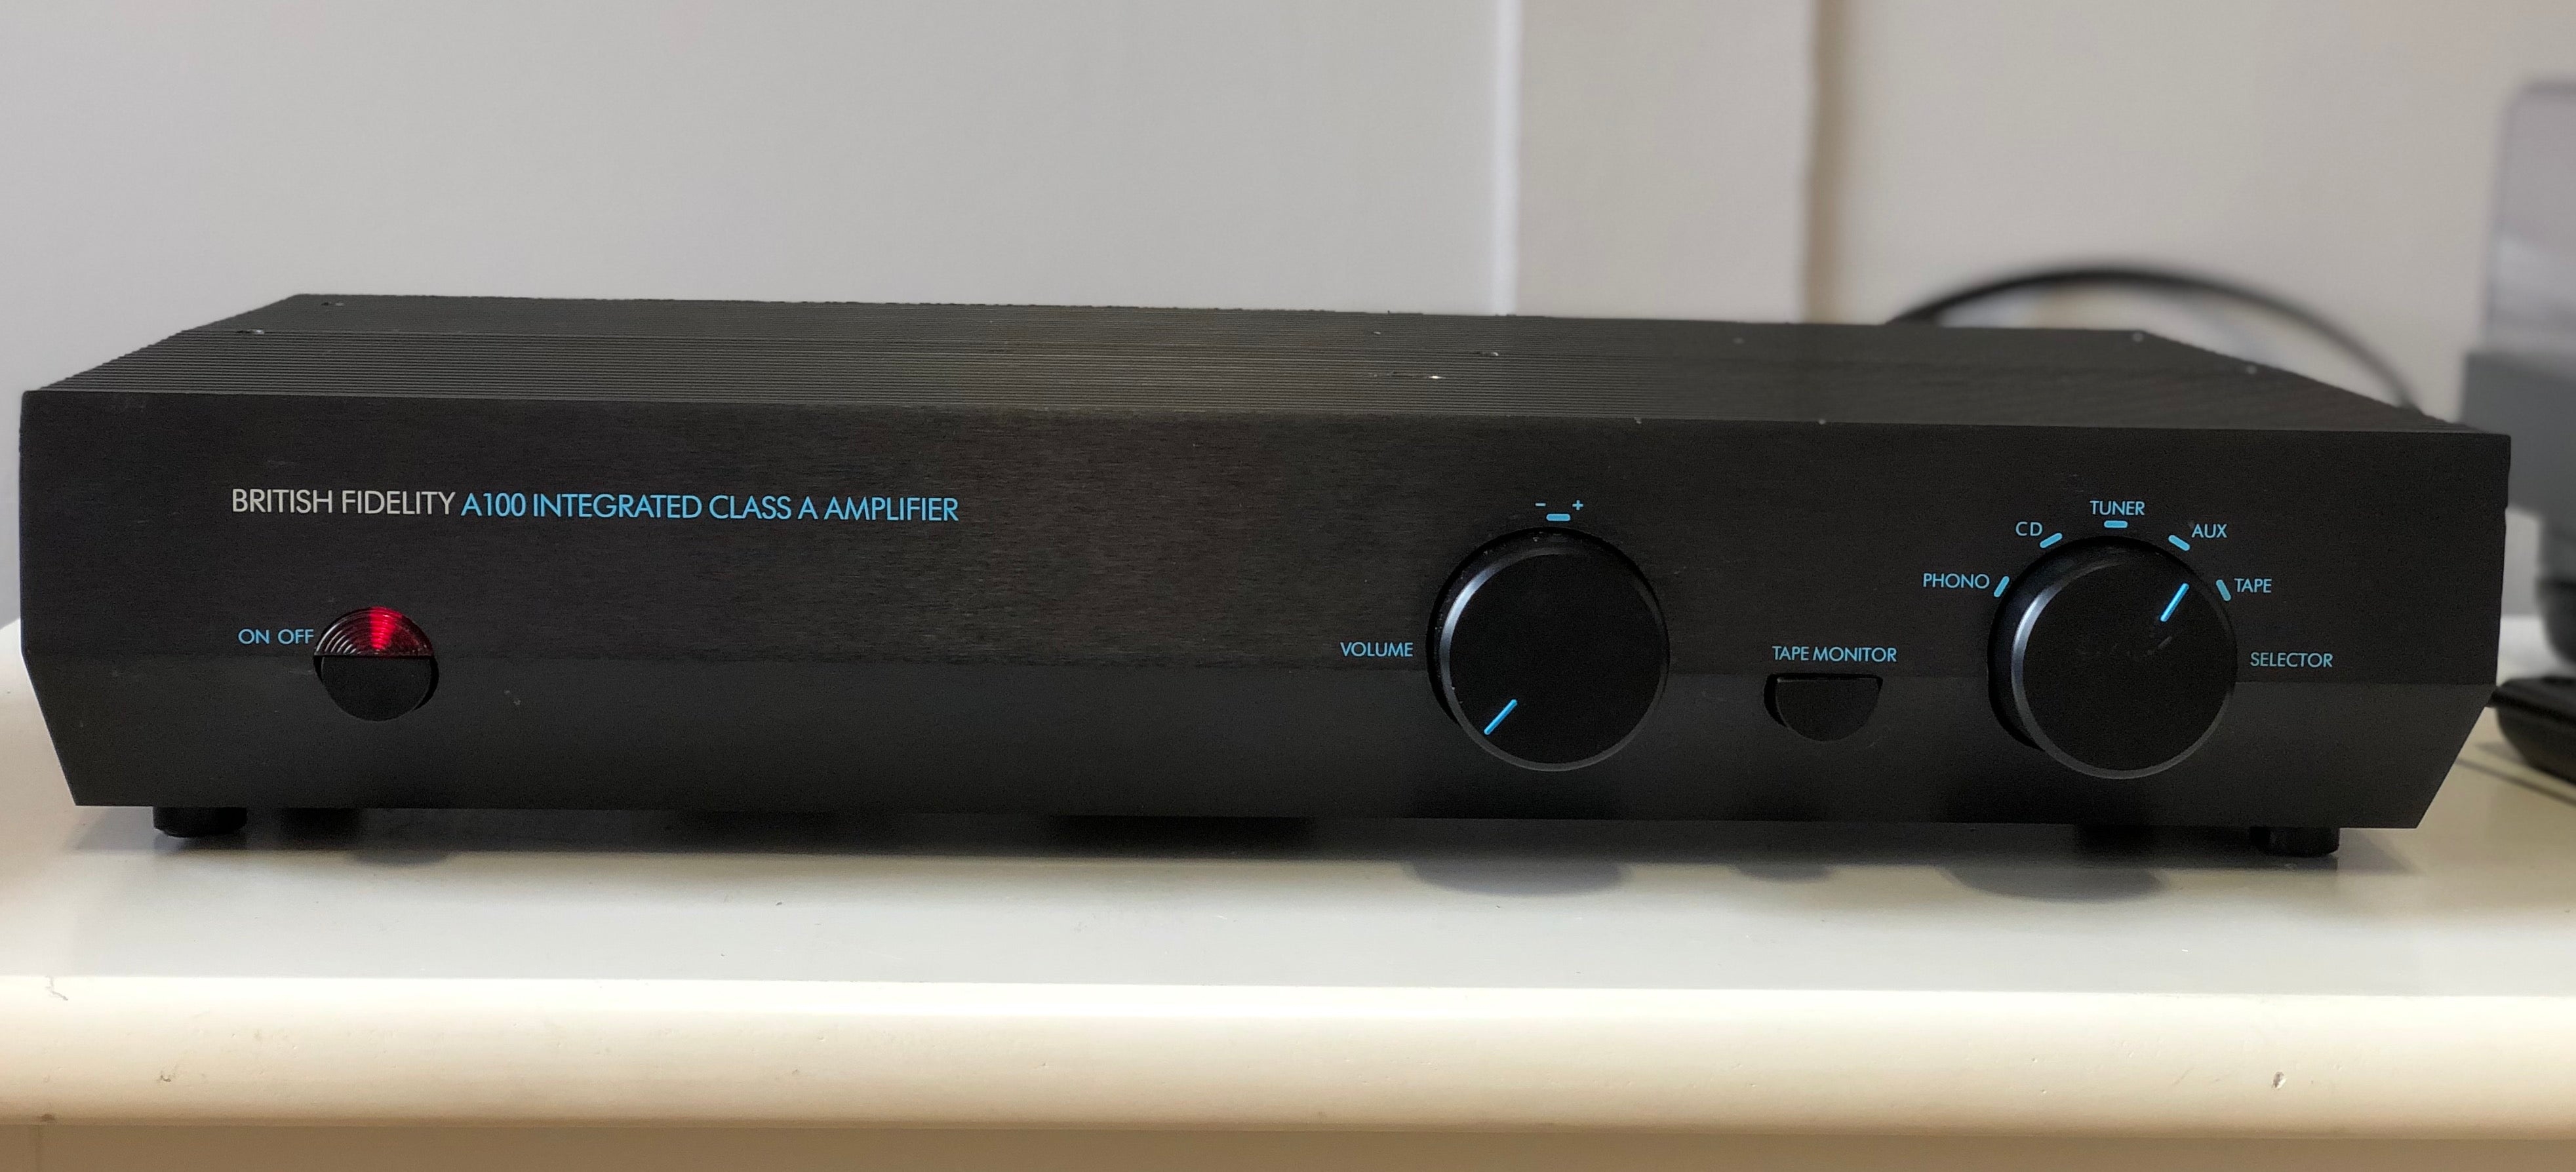 British Fidelity A100 Class-A Integrated Amplifier